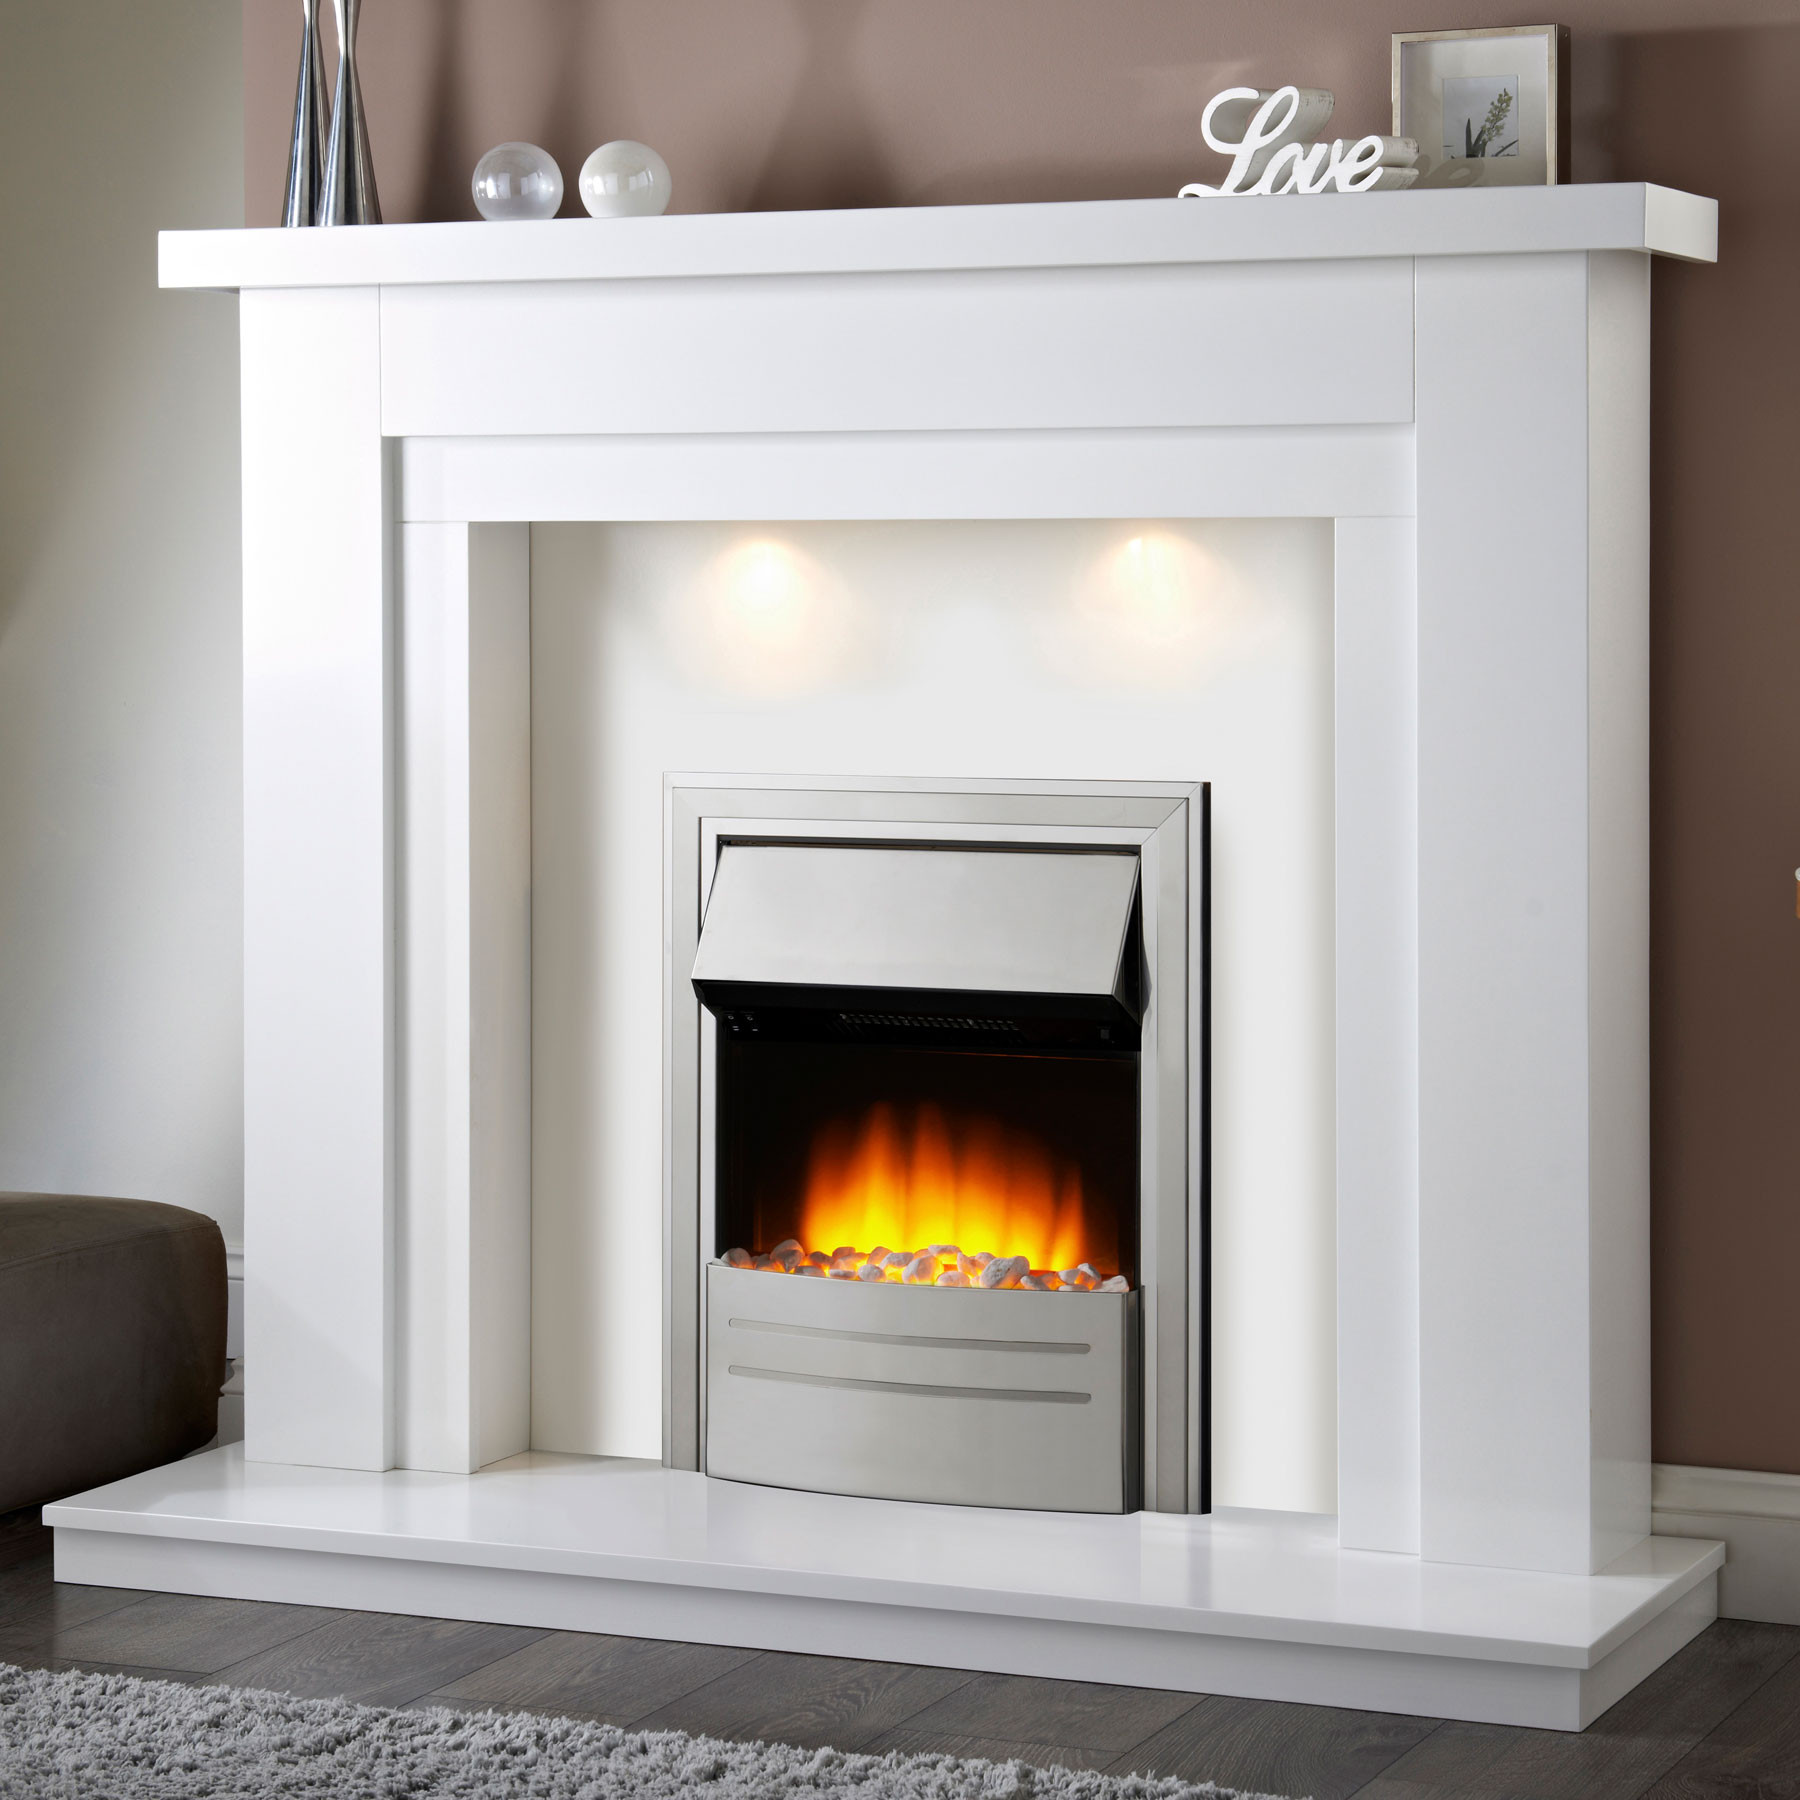 epic white electric fireplace about 1 white electric fireplace suite fire pit of white electric fireplace